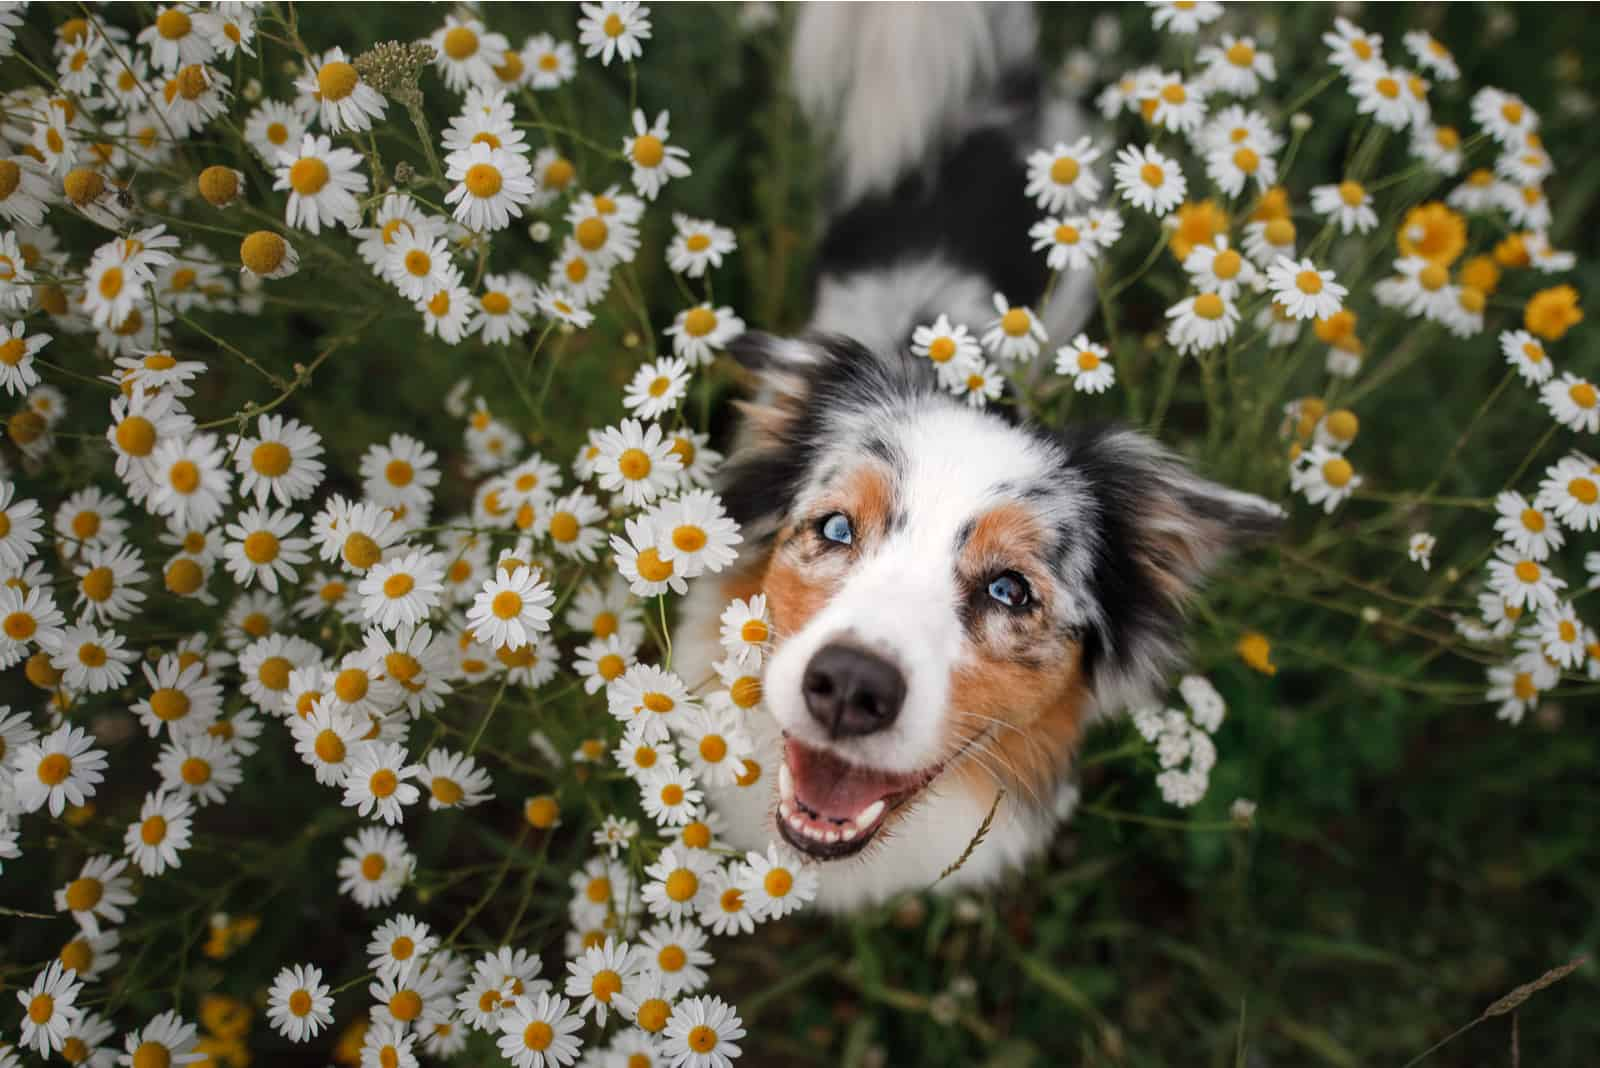 A happy dog in flowers